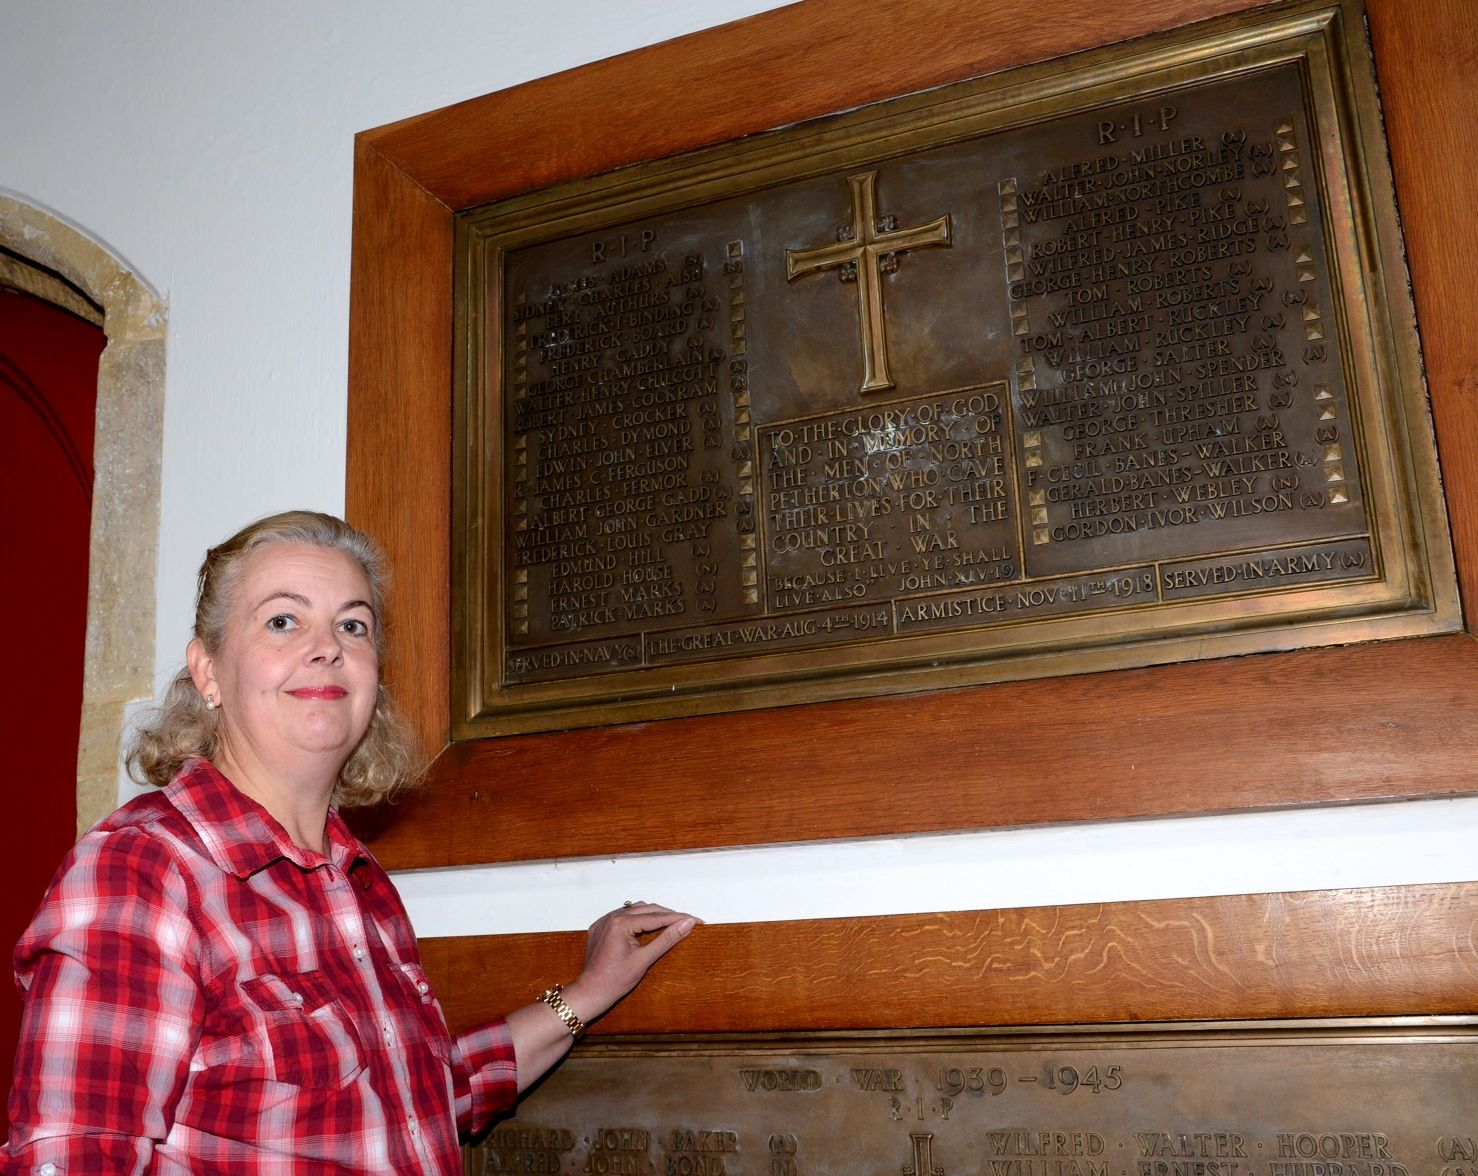 Wendy Mclean stands beside the war memorial plaque at North Petherton's Sty Mary's Church